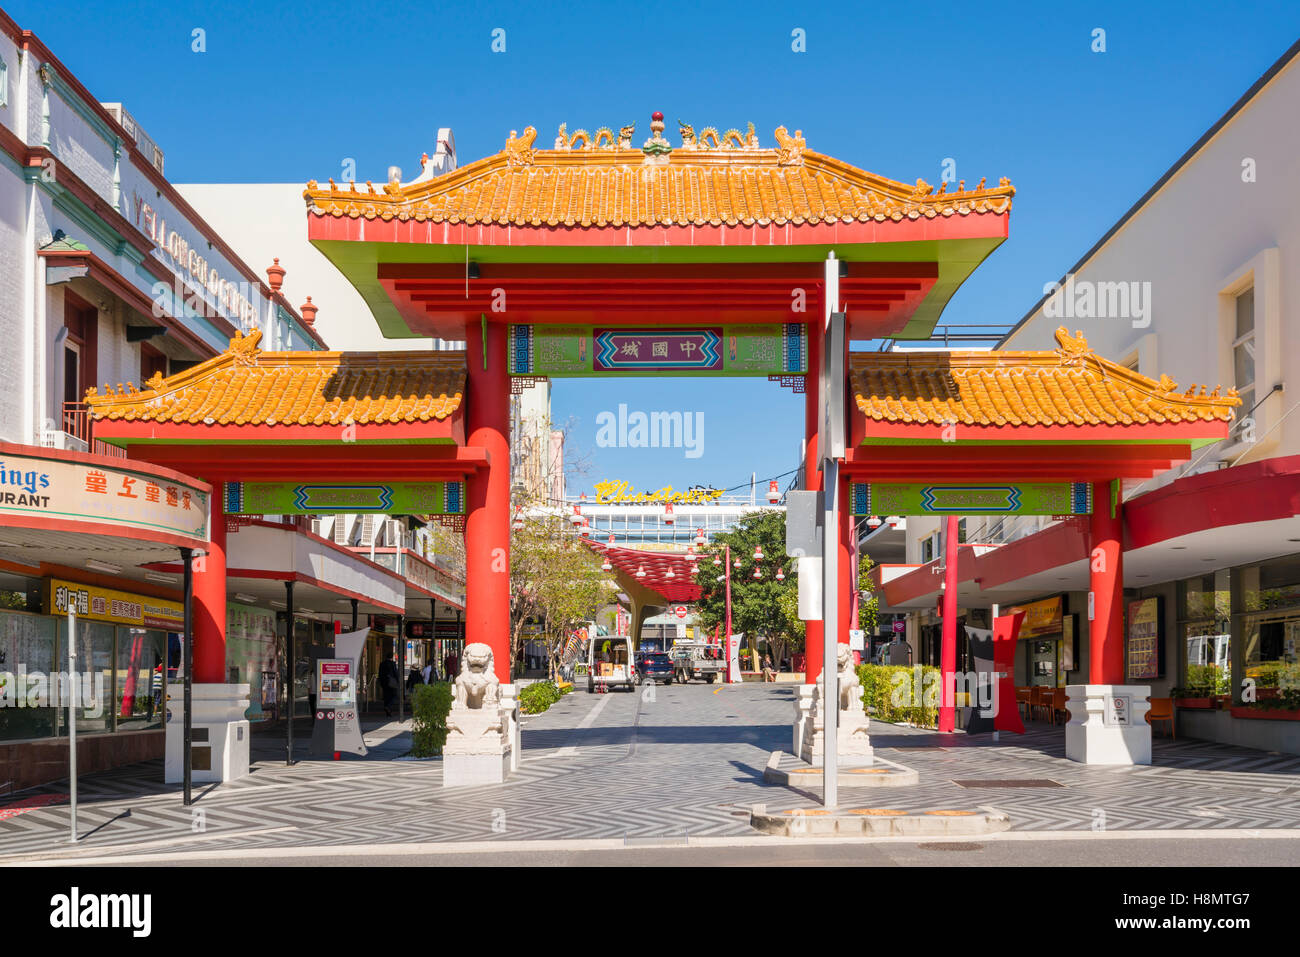 Chinatown in Brisbane, Australia - Stock Image